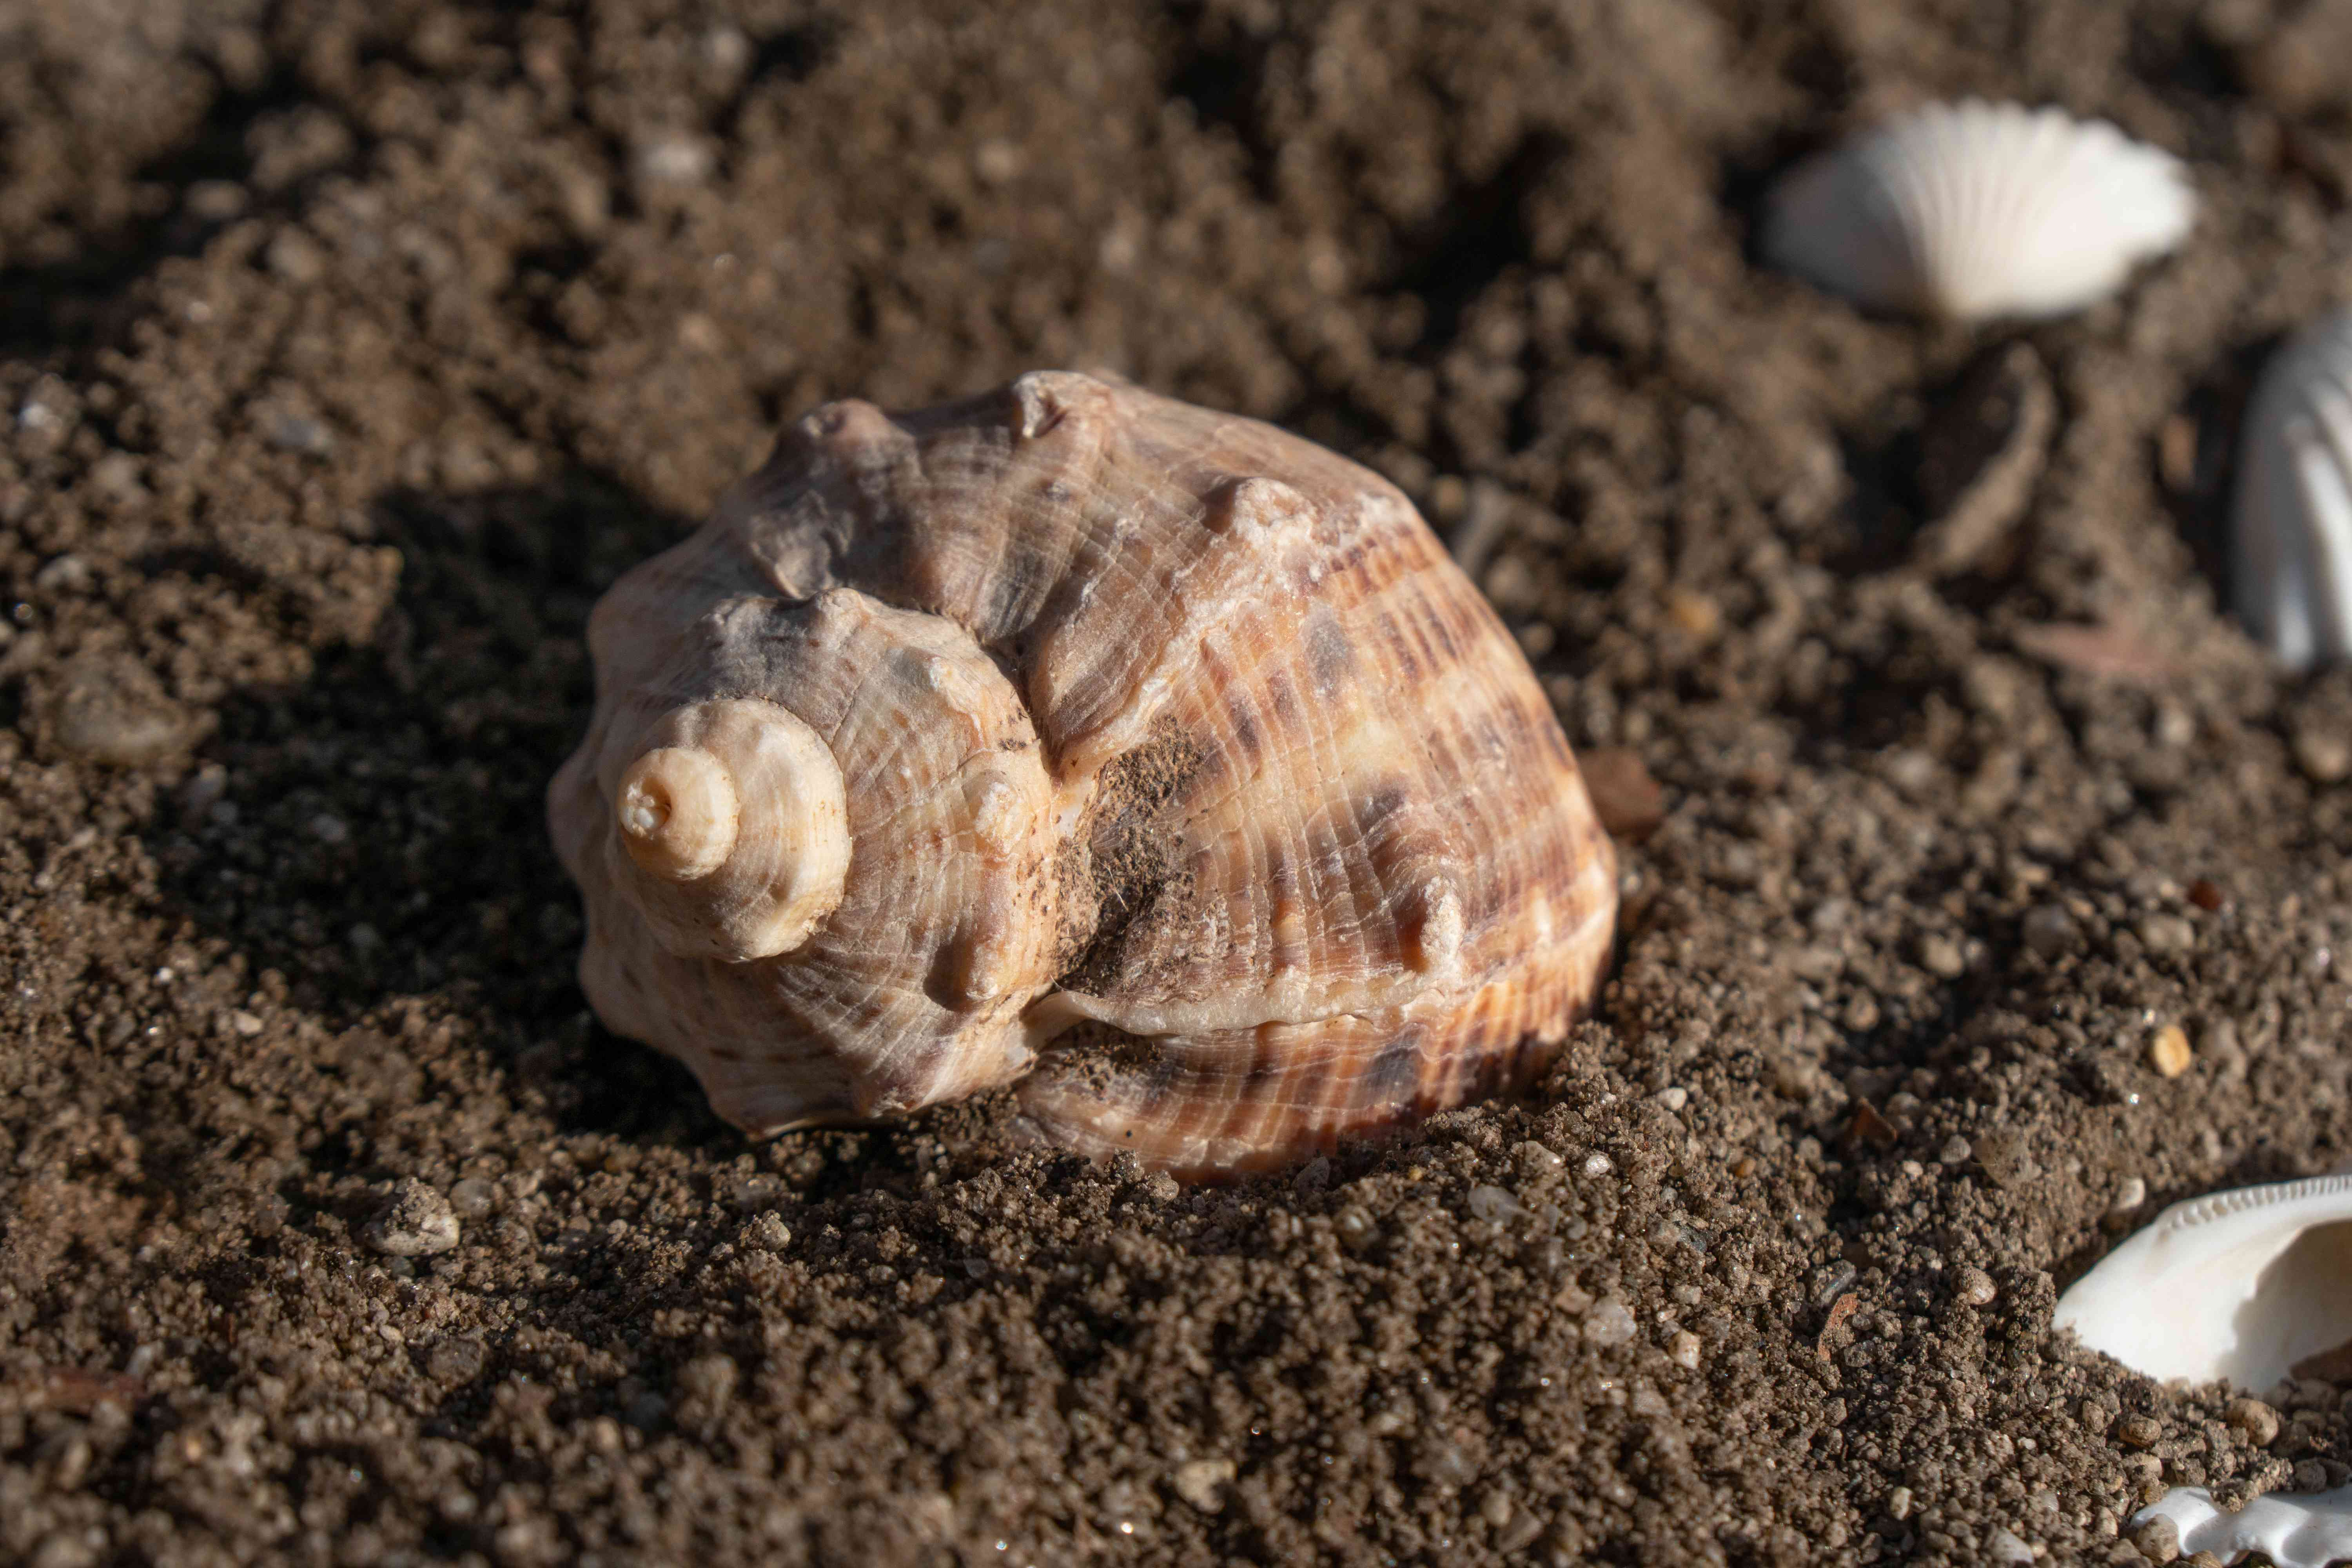 close shot of spiral shell nested in brown sand surrounded by other shells on beach